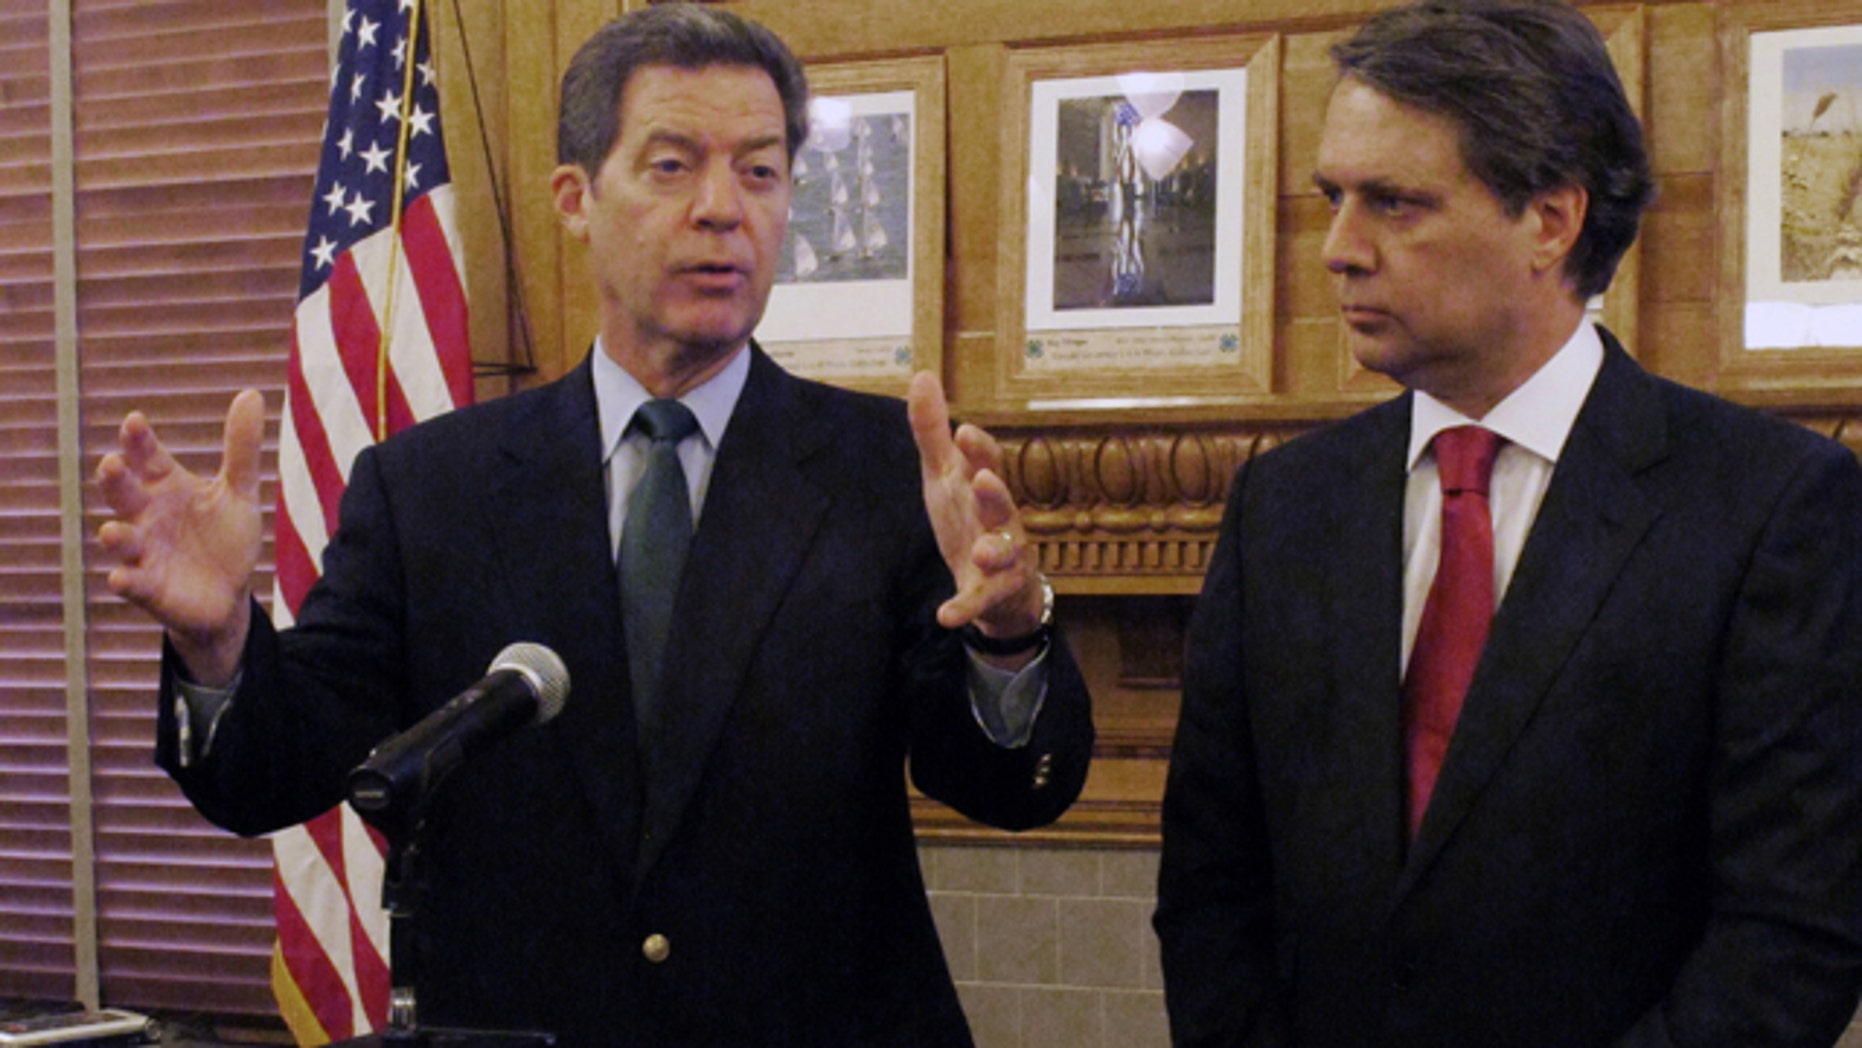 FILE - In this Sept. 11, 2014 file photograph, Kansas Gov. Sam Brownback, left, and Lt. Gov. Jeff Colyer speak at the Statehouse in Topeka. (AP Photo/John Hanna, File)